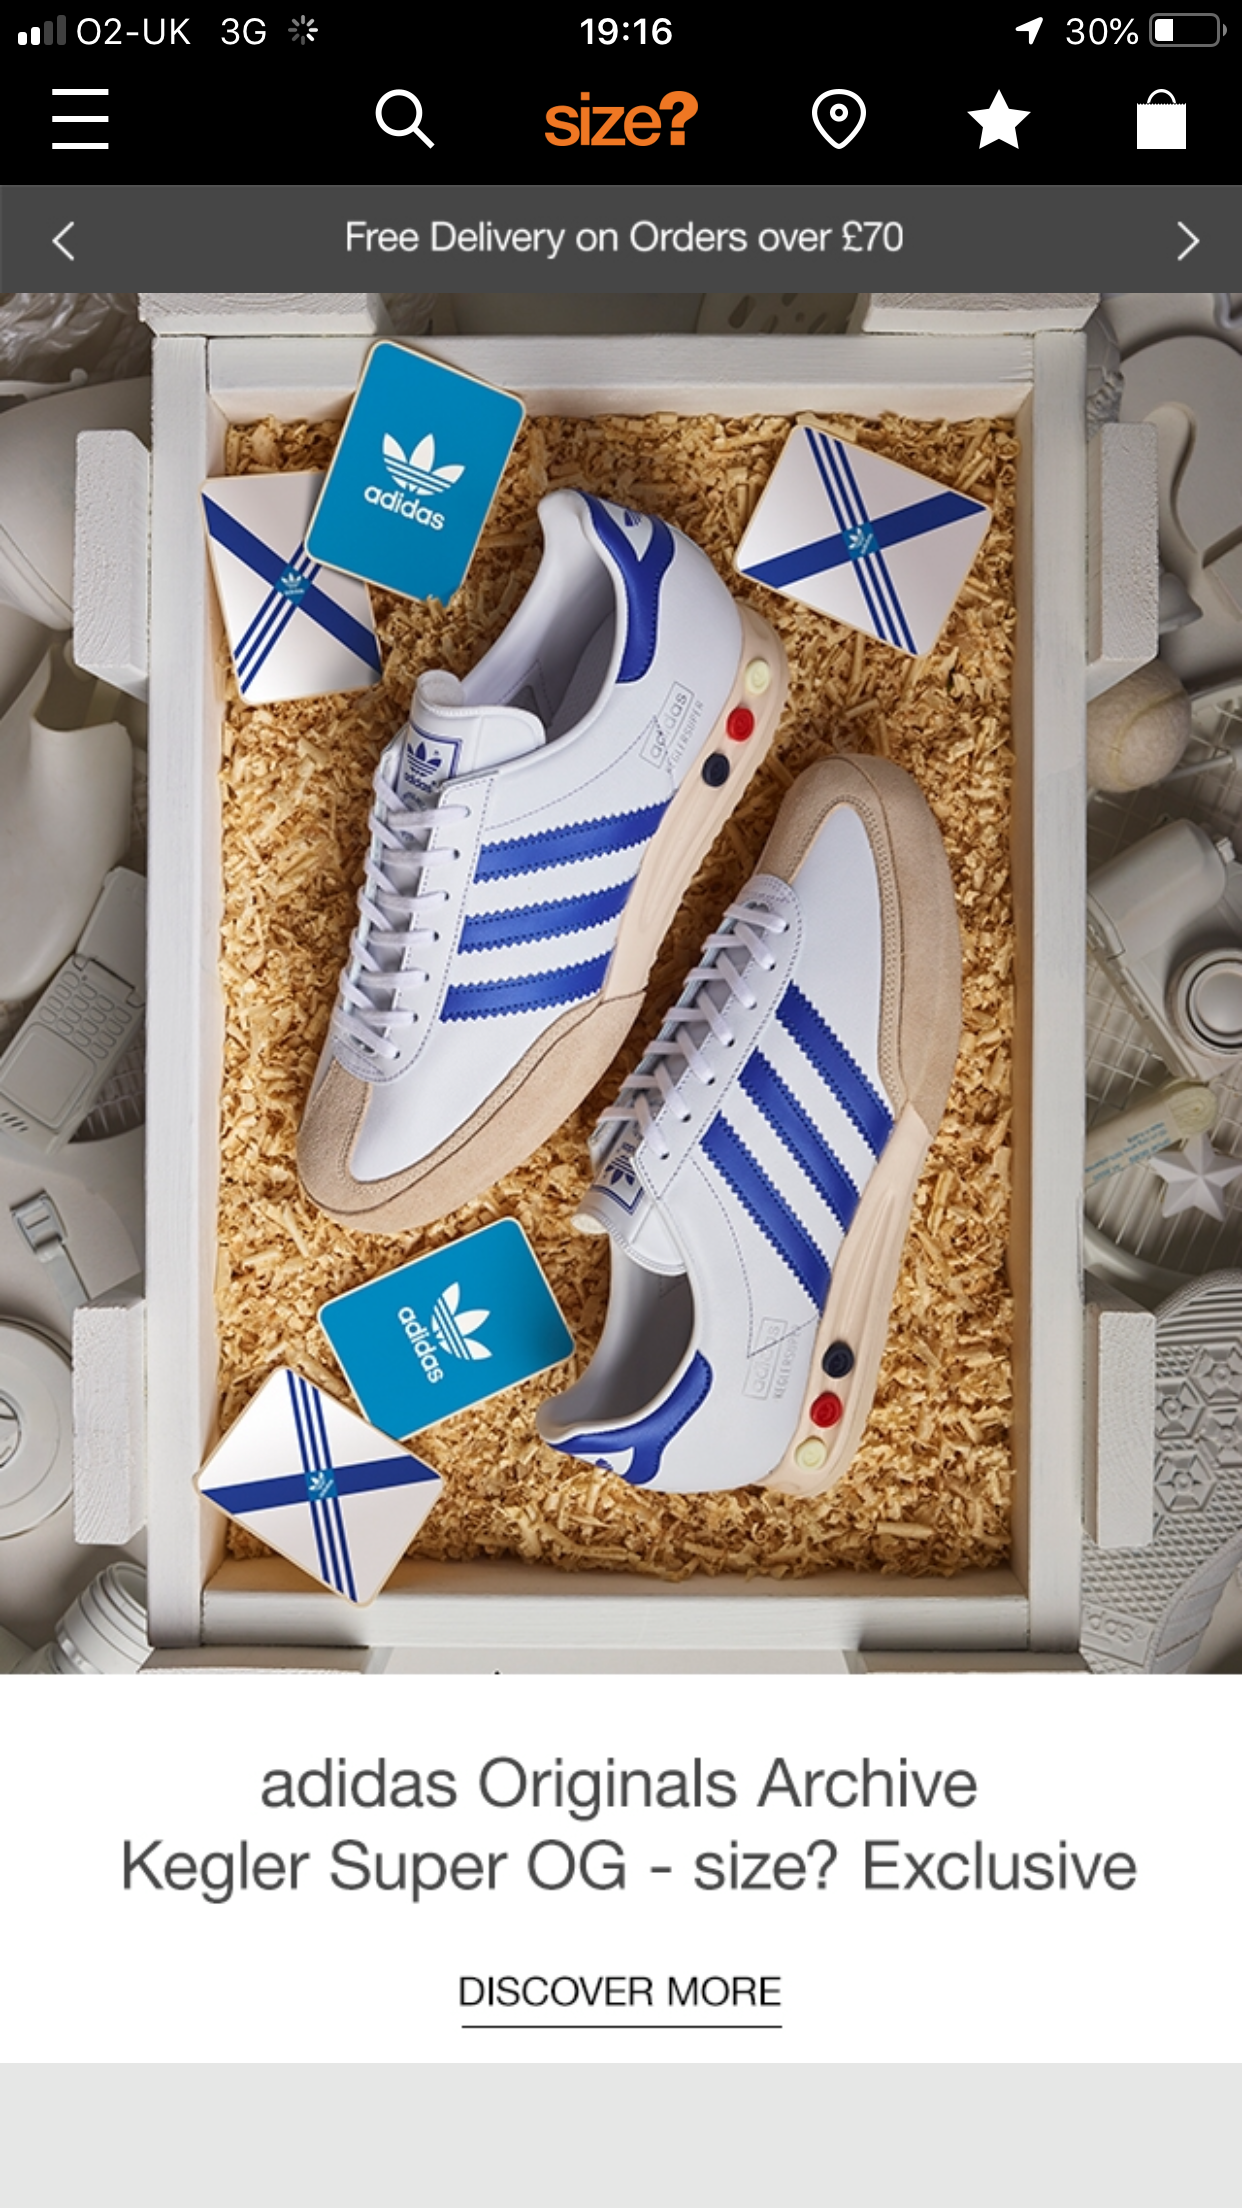 Pin by Gerhard Koen on Brands: Adidas in 2019 | Retro adidas